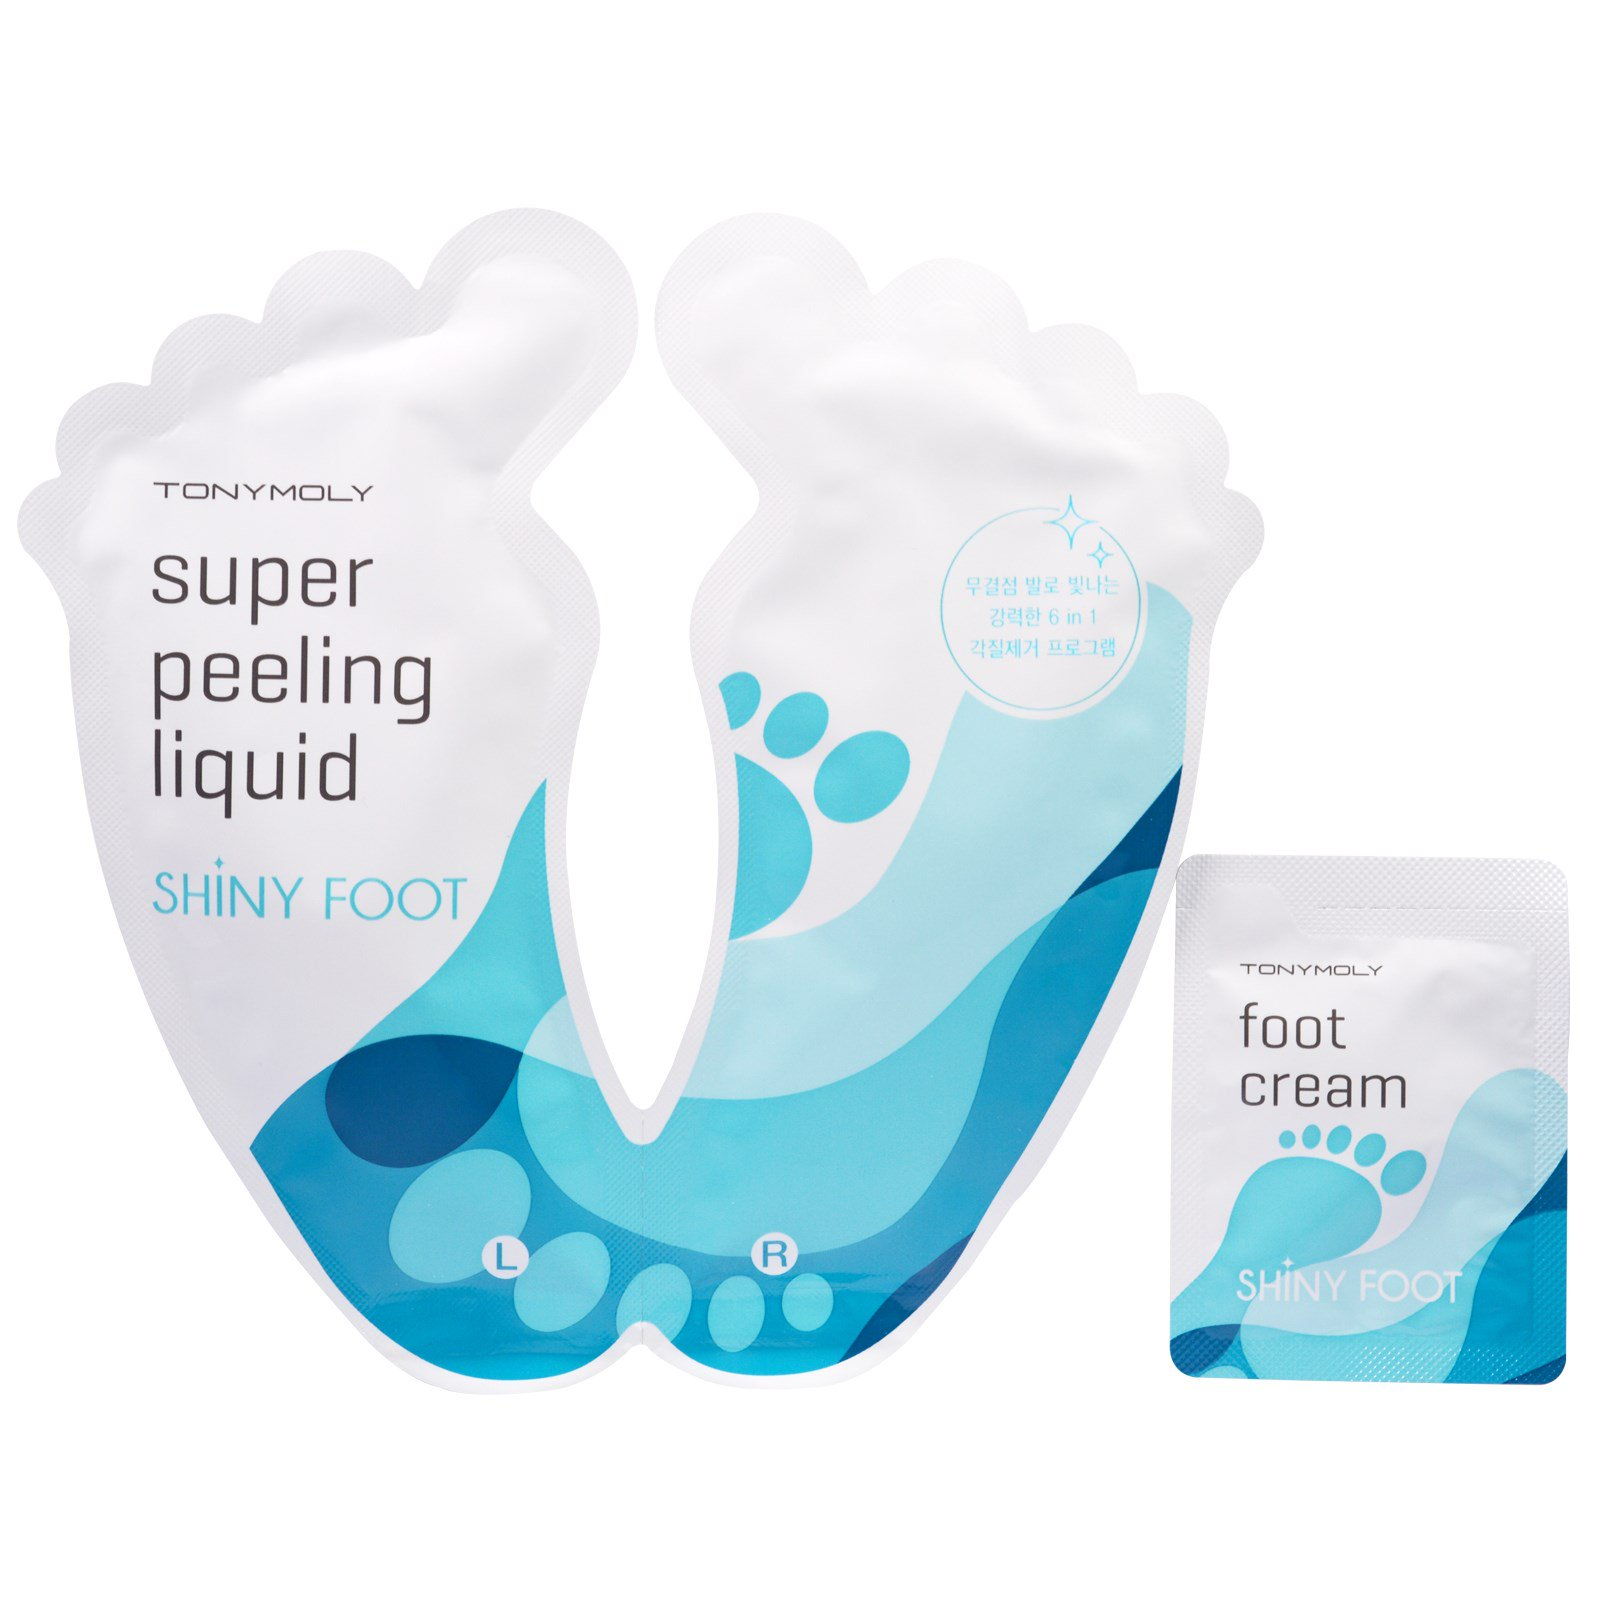 https://ru.iherb.com/pr/Tony-Moly-Shiny-Foot-Super-Peeling-Liquid/68425?rcode=KGR603&pcode=BBTEN